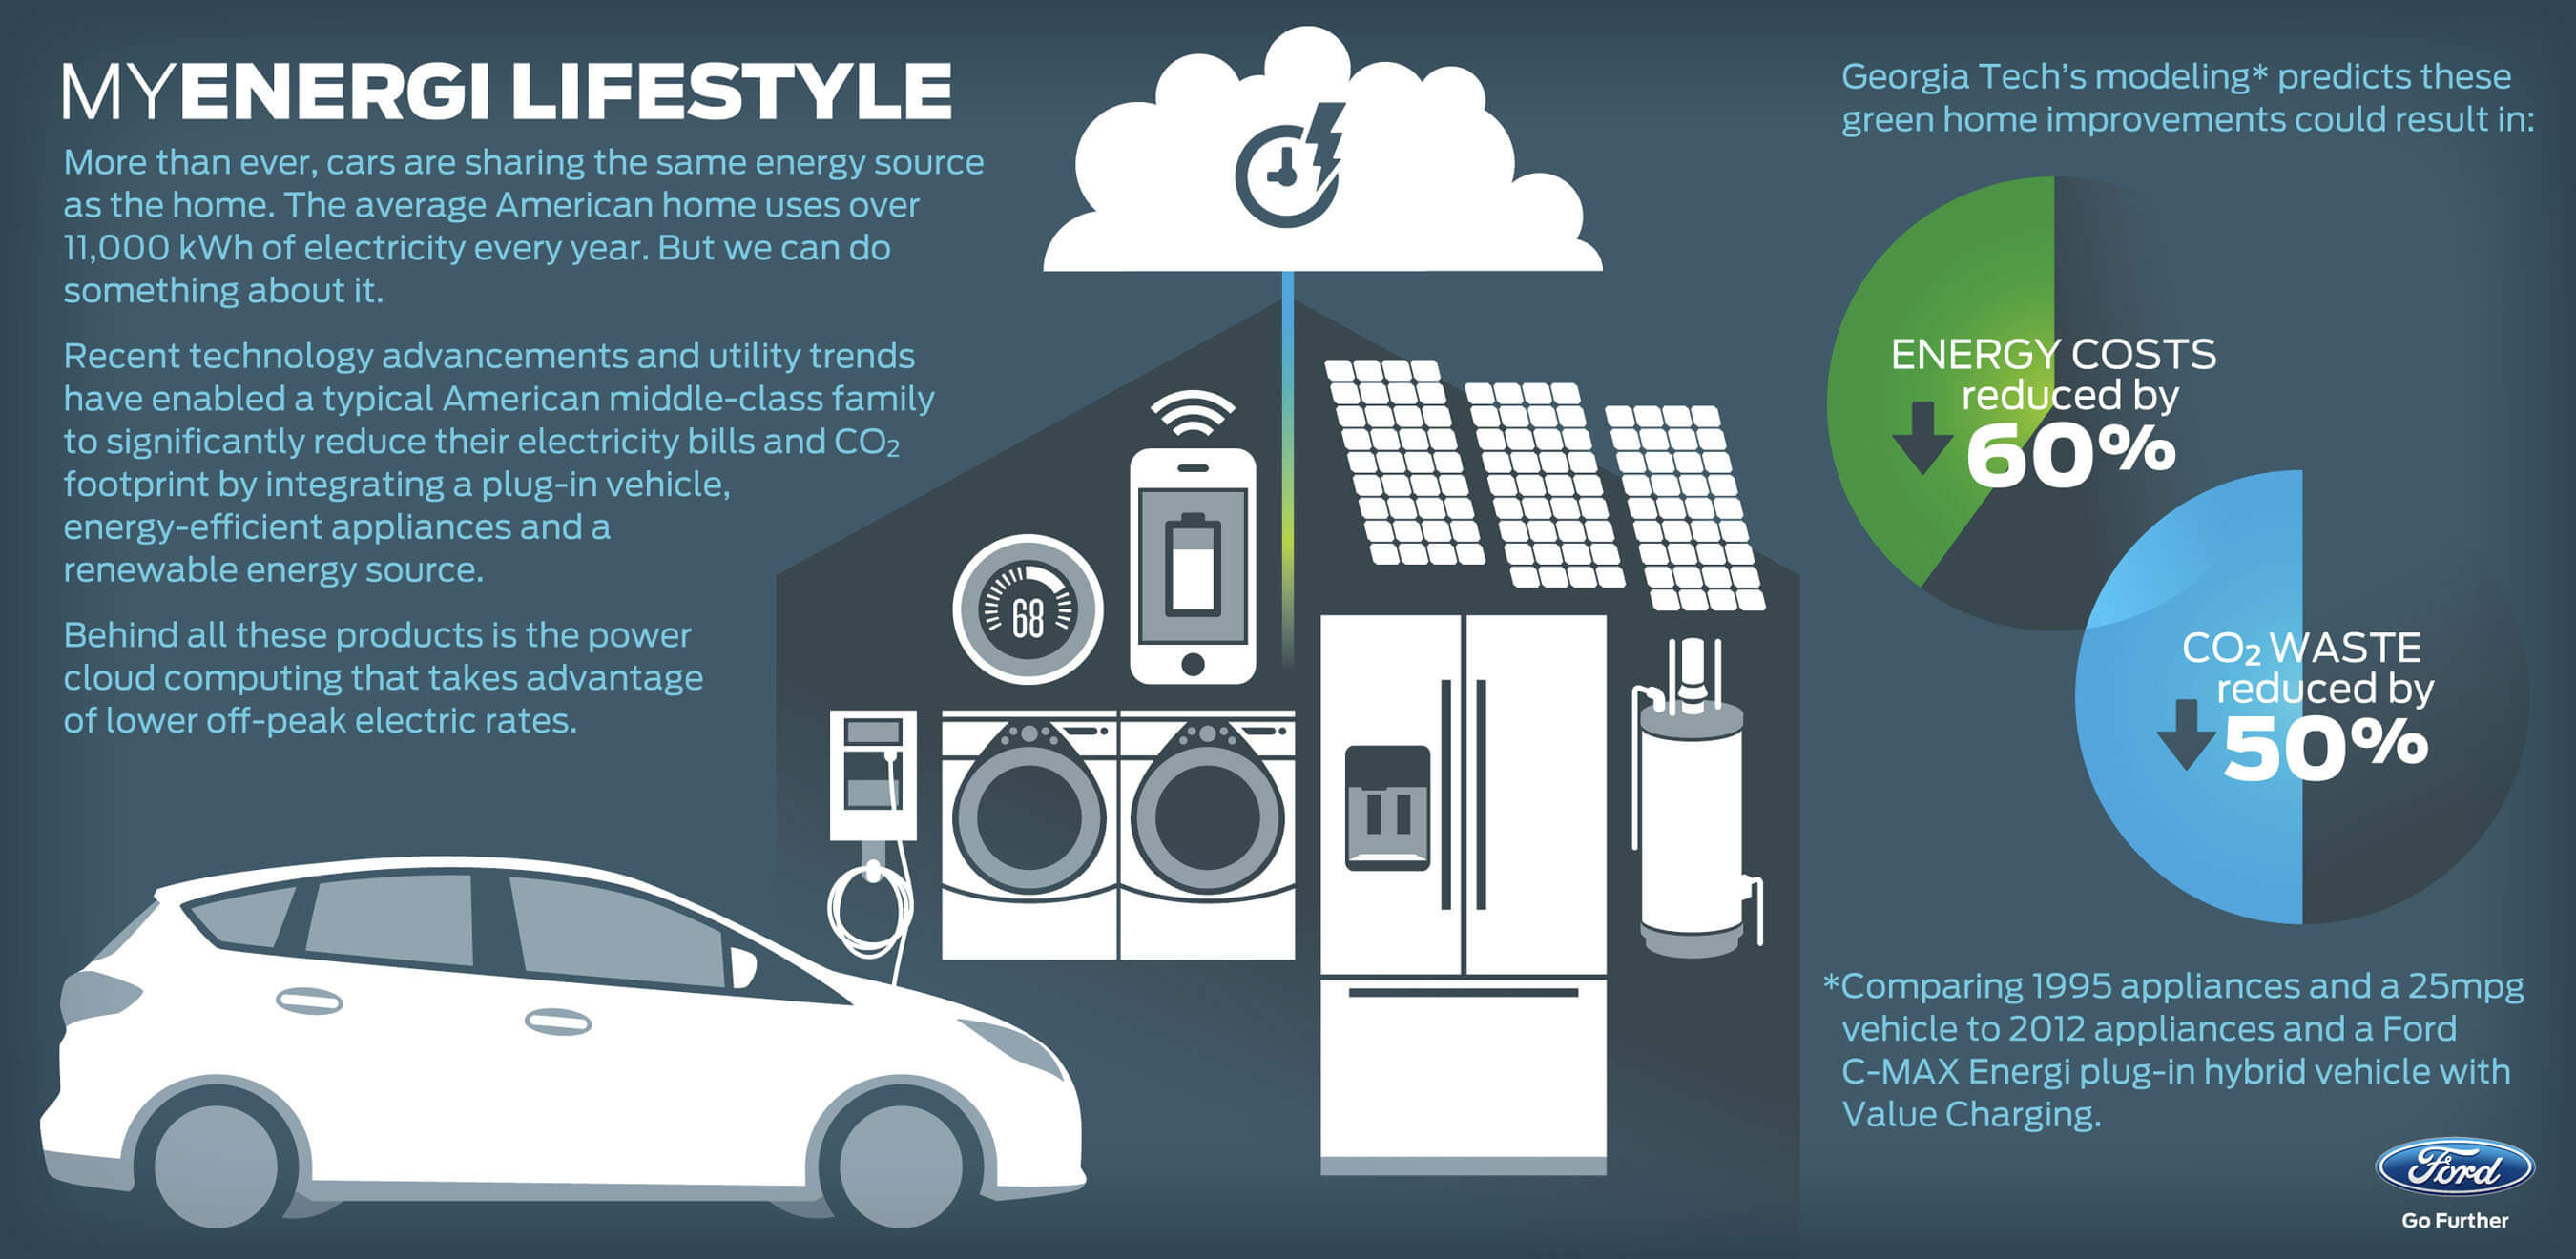 Ford's MyEnergi Lifestyle shows how plug-in vehicles can balance your home energy consumption